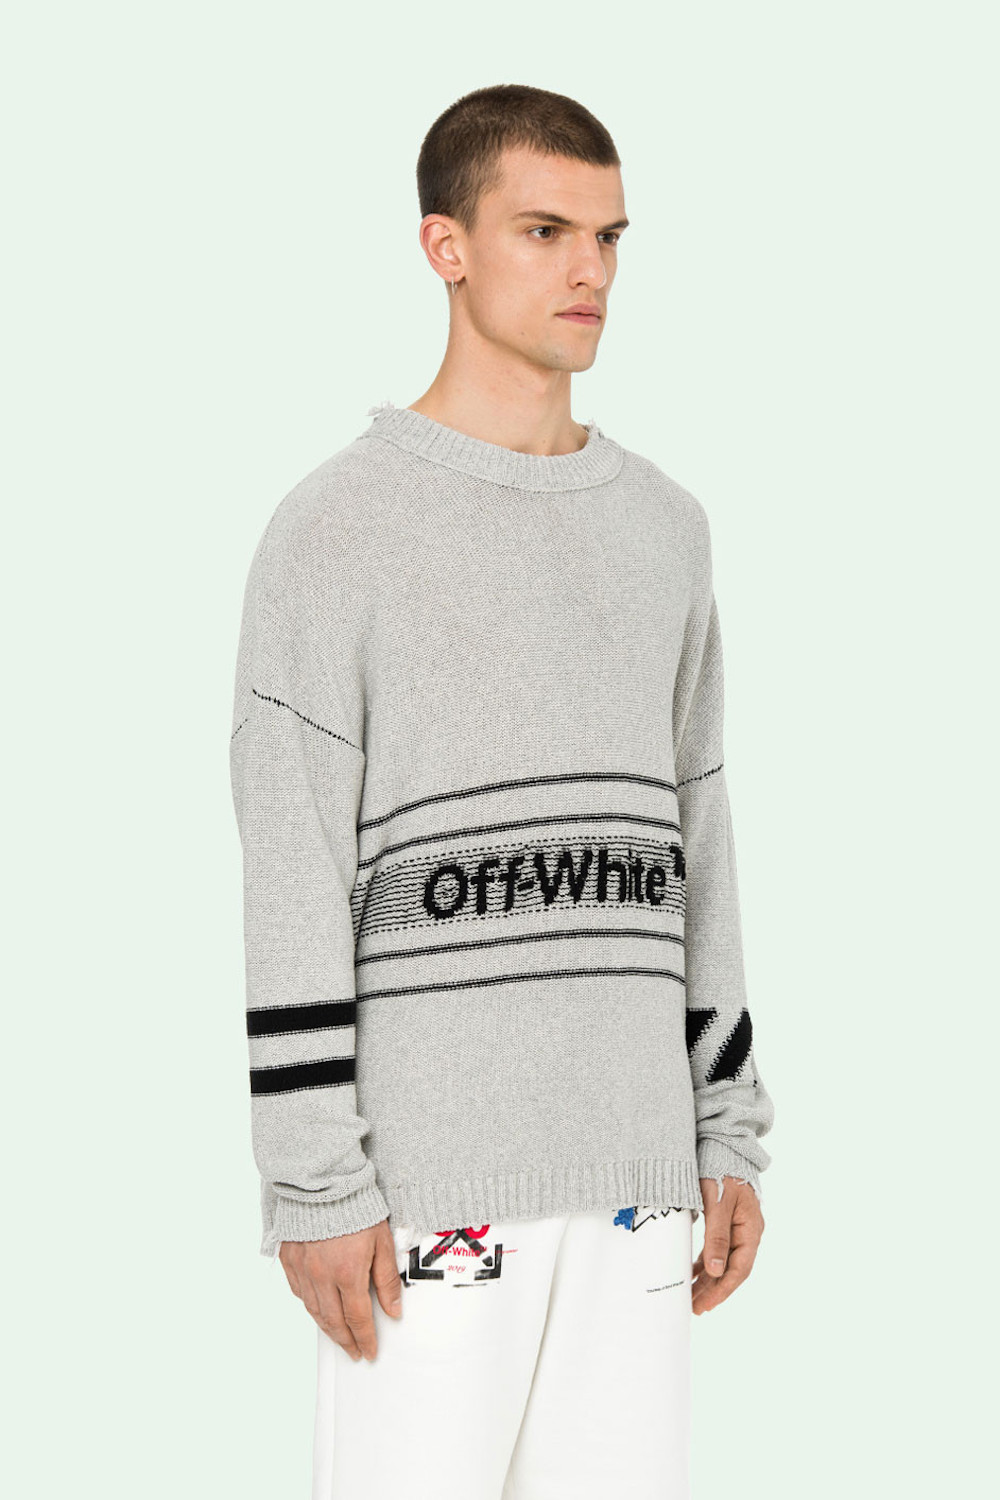 Off-White's Spring/Summer 2019 is Available for Pre-Order